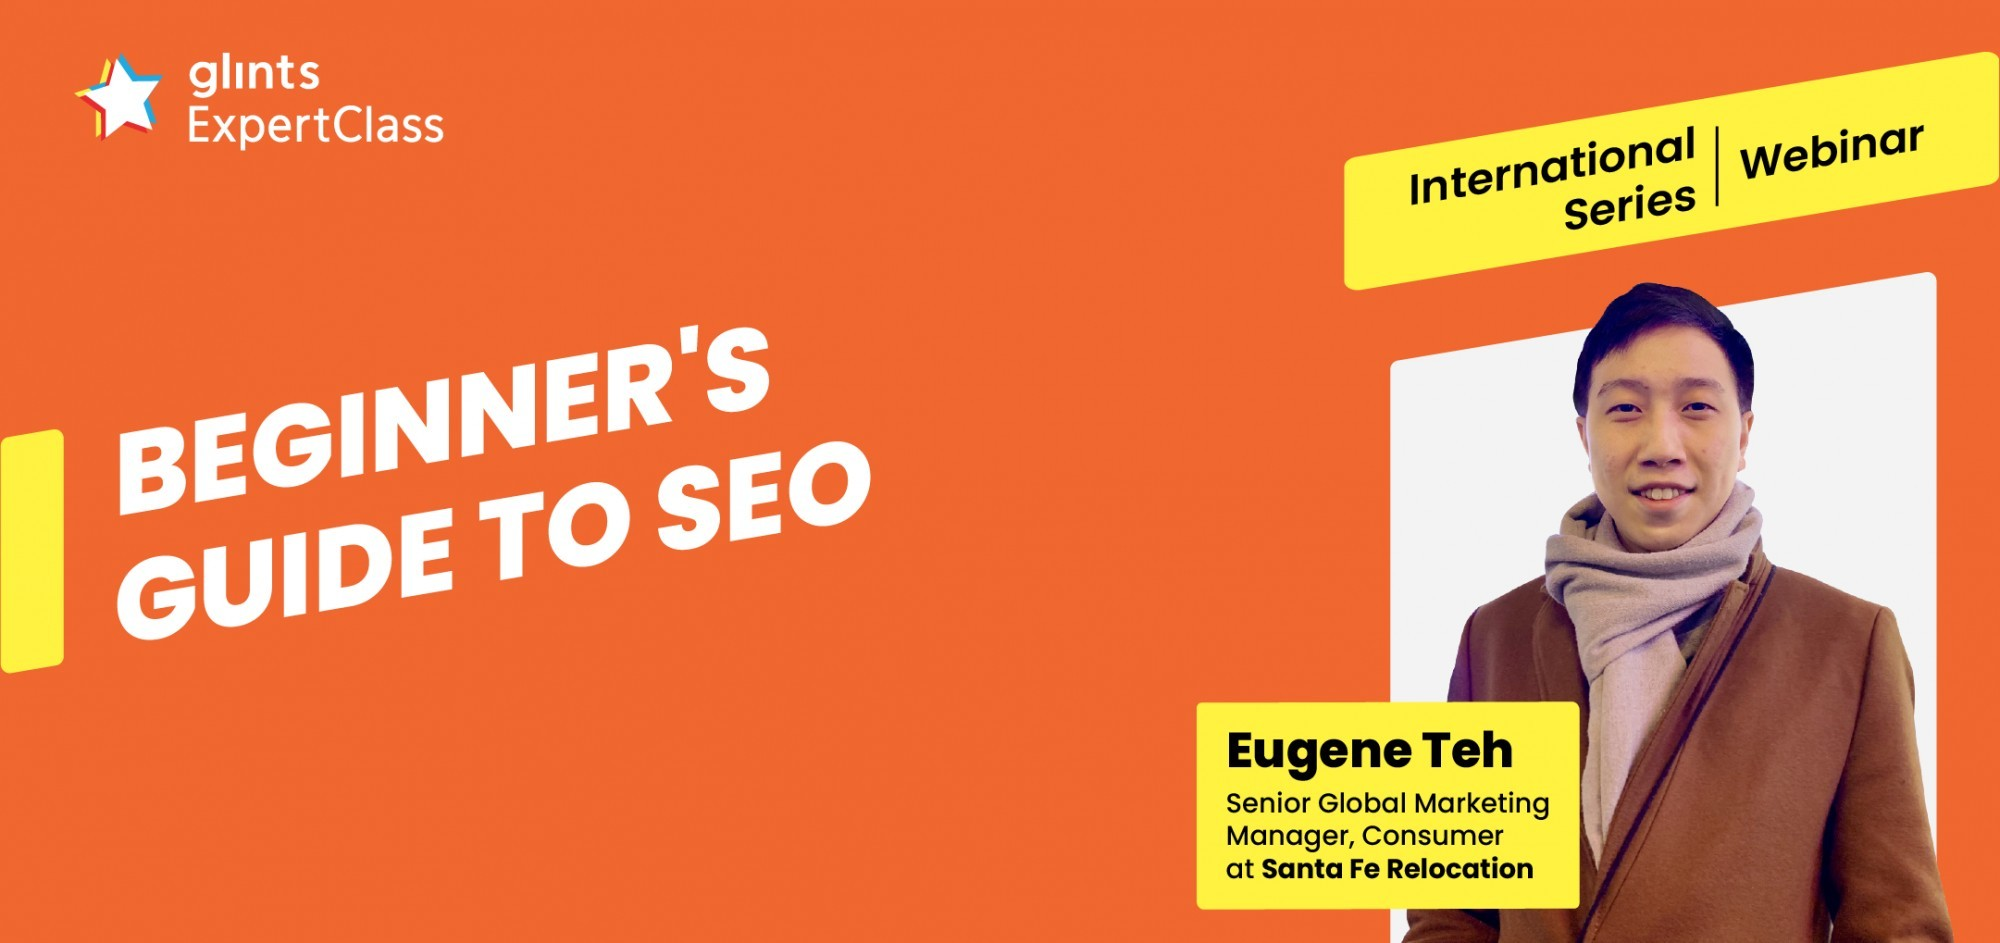 [Glints - GEC International Series] Beginner's Guide to SEO